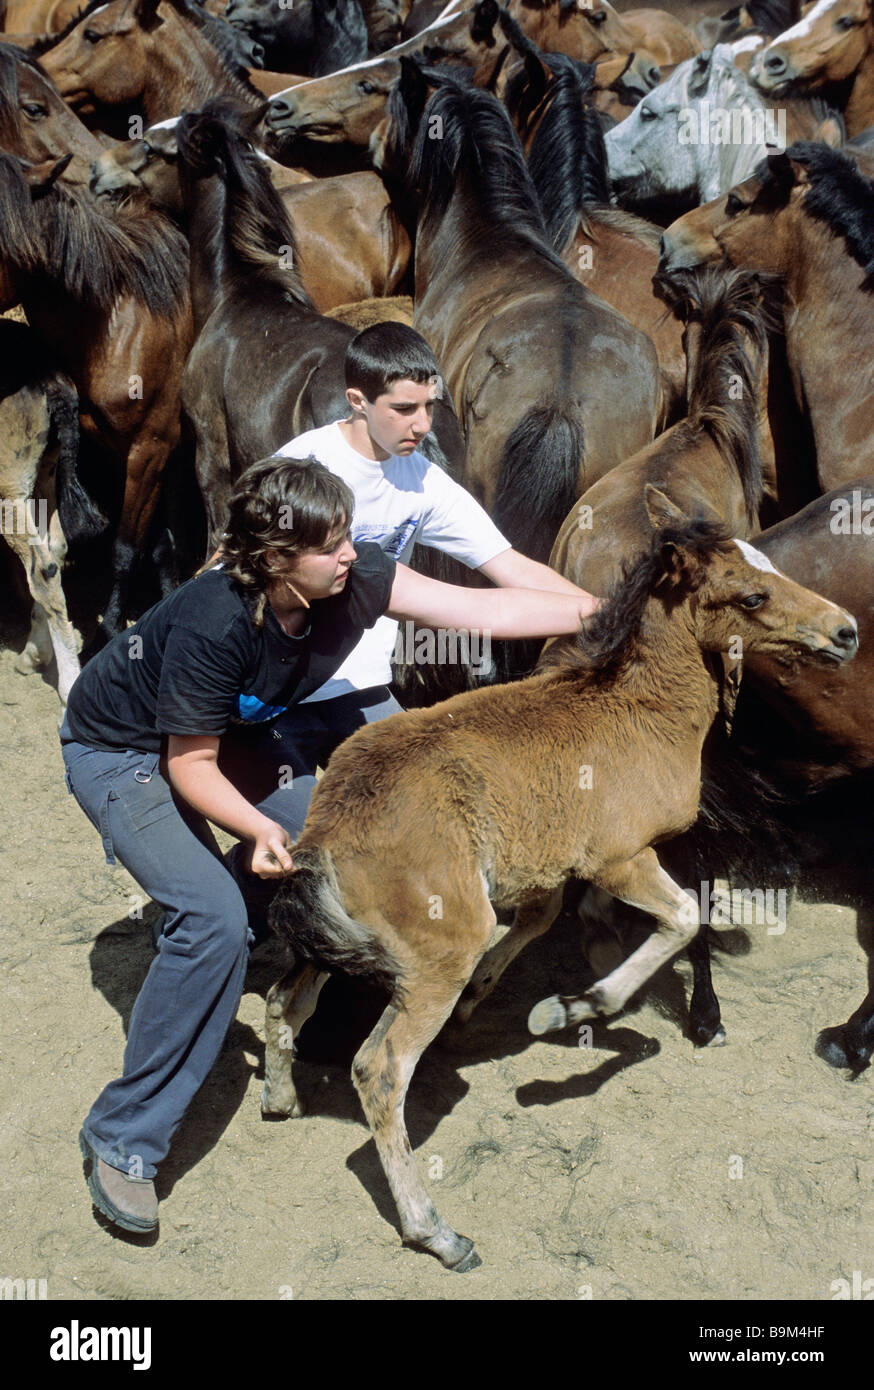 childrens are trying to catch a colt during the festival called Rapa das Bestas in Sabucedo Galicia Northwestern - Stock Image